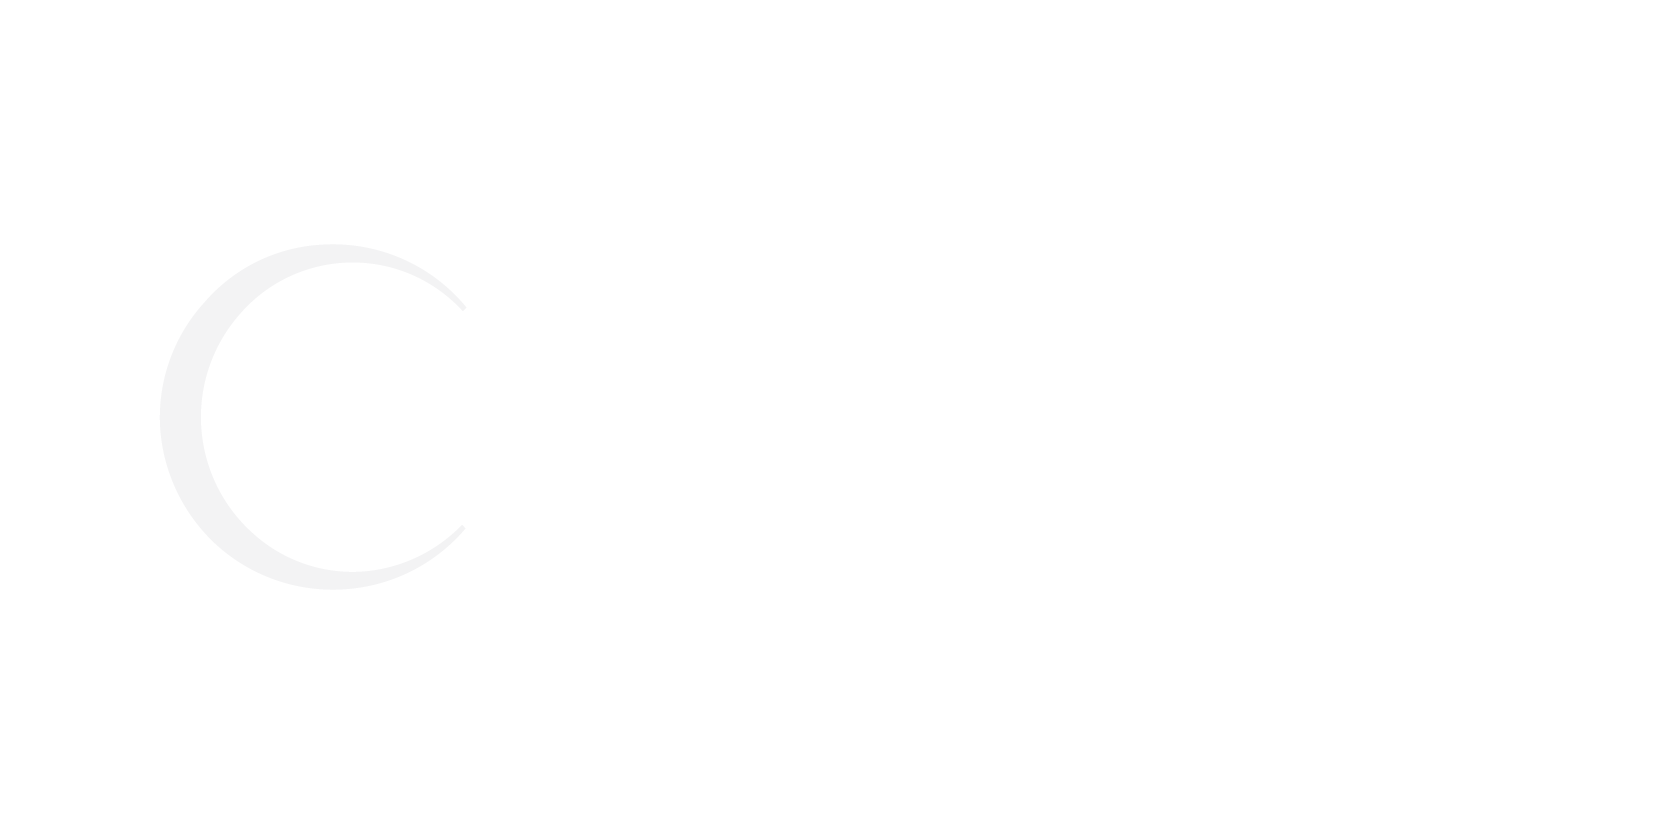 Comcast - Security7 Networks